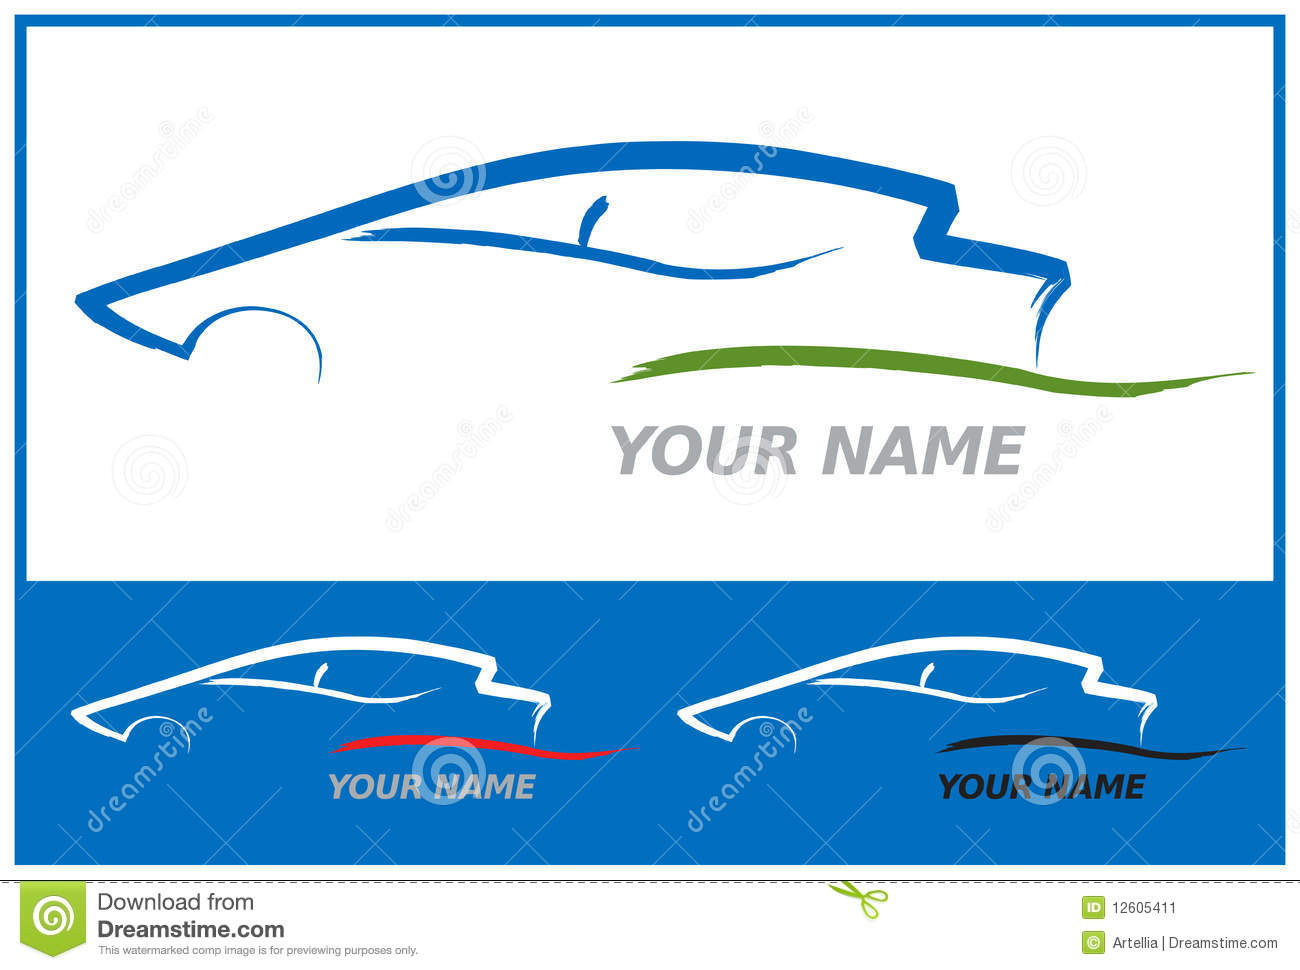 Car Logo In Blue And Green Vector Illustration Stock Image - Image ...